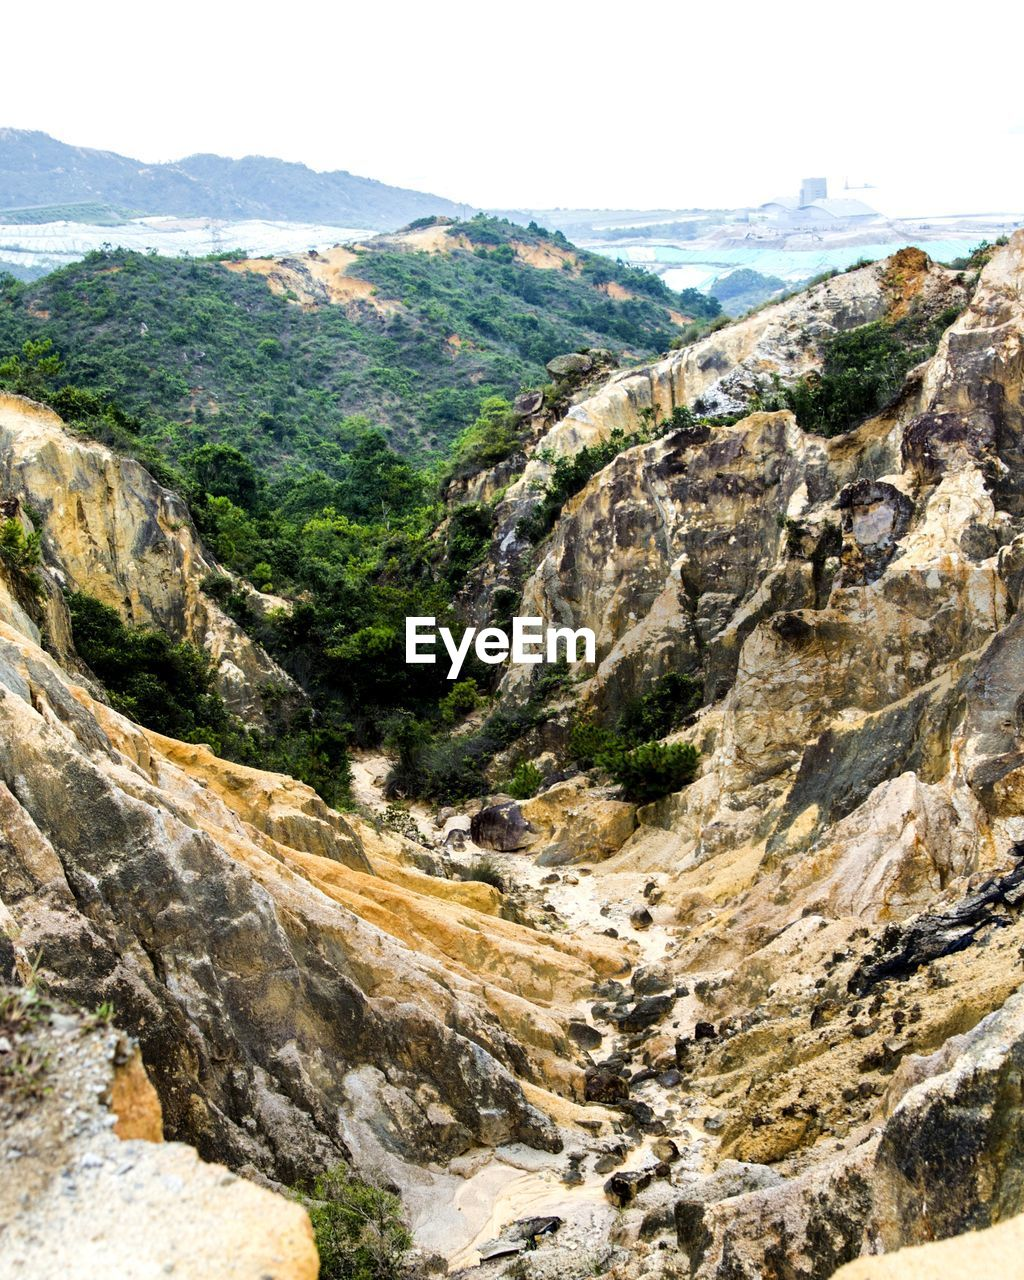 mountain, scenics - nature, nature, mountain range, rock, day, landscape, no people, beauty in nature, environment, tranquil scene, tranquility, sky, solid, outdoors, high angle view, plant, rock - object, rock formation, non-urban scene, formation, mountain peak